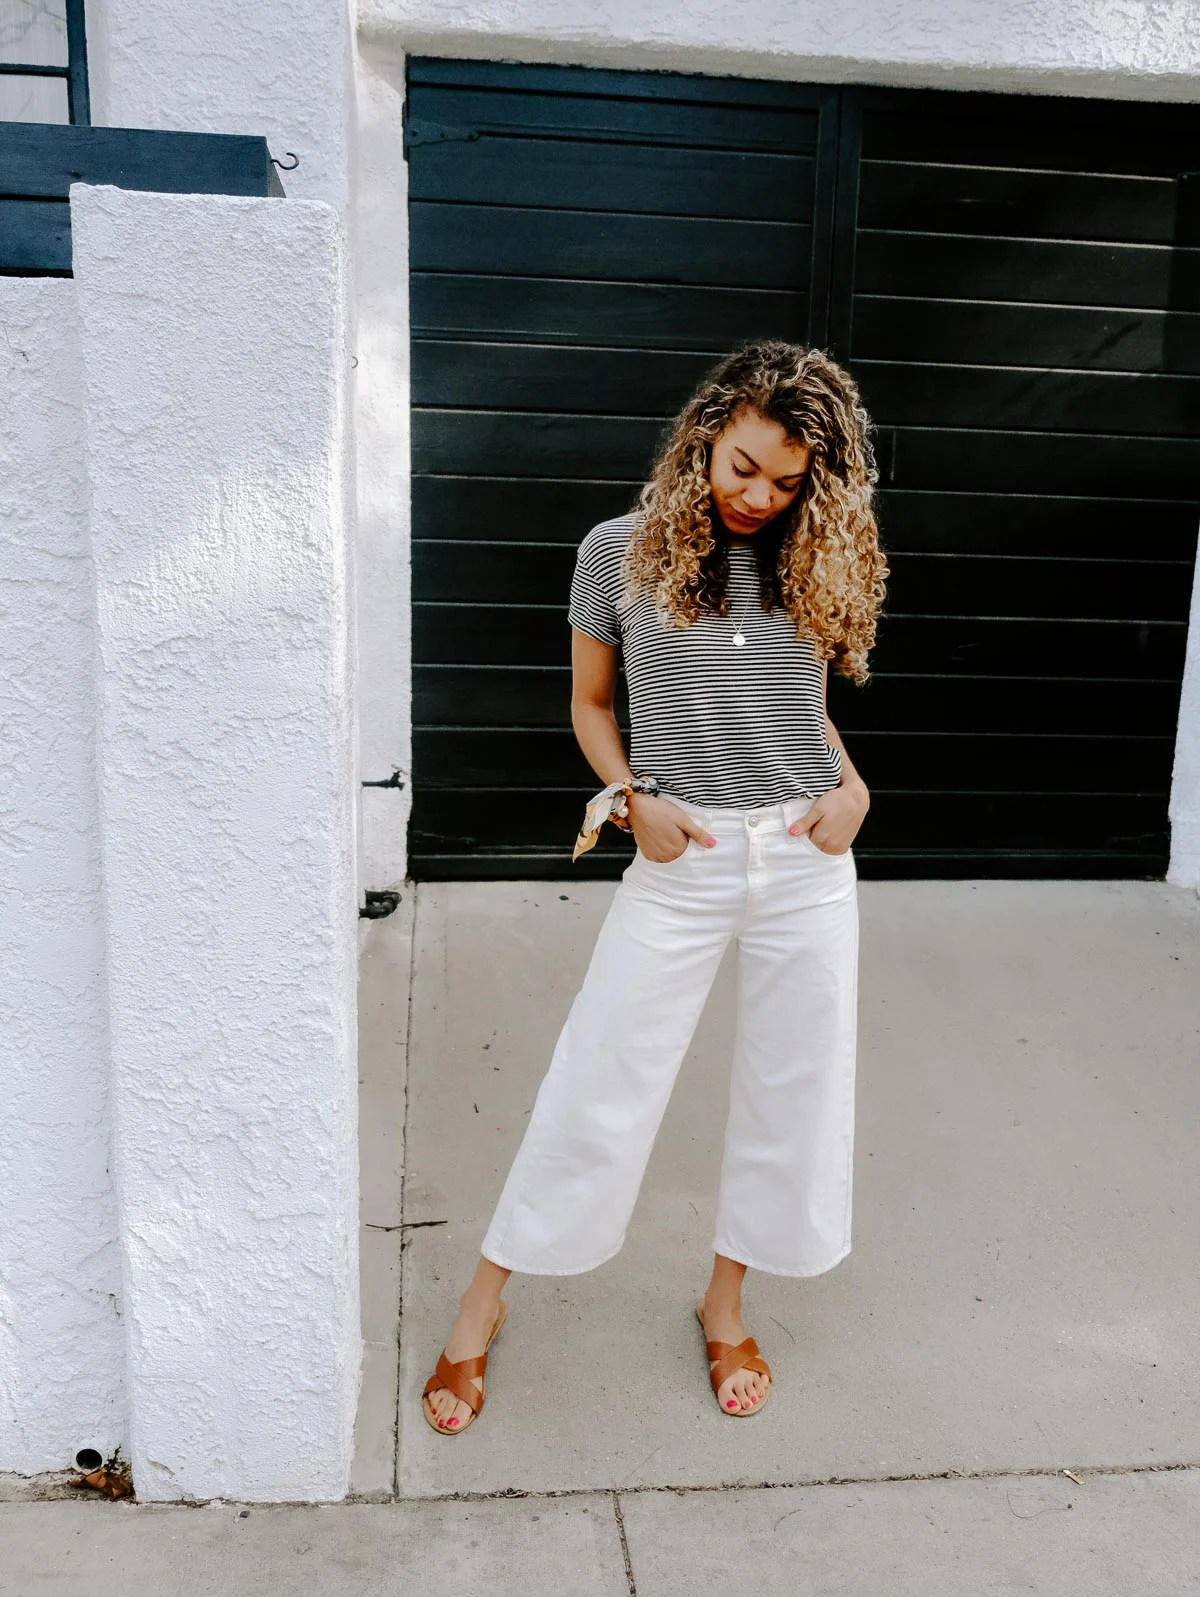 Planning a trip to LA and need to know what to wear? This post has the LA packing essentials that you need for a trip to Los Angeles!